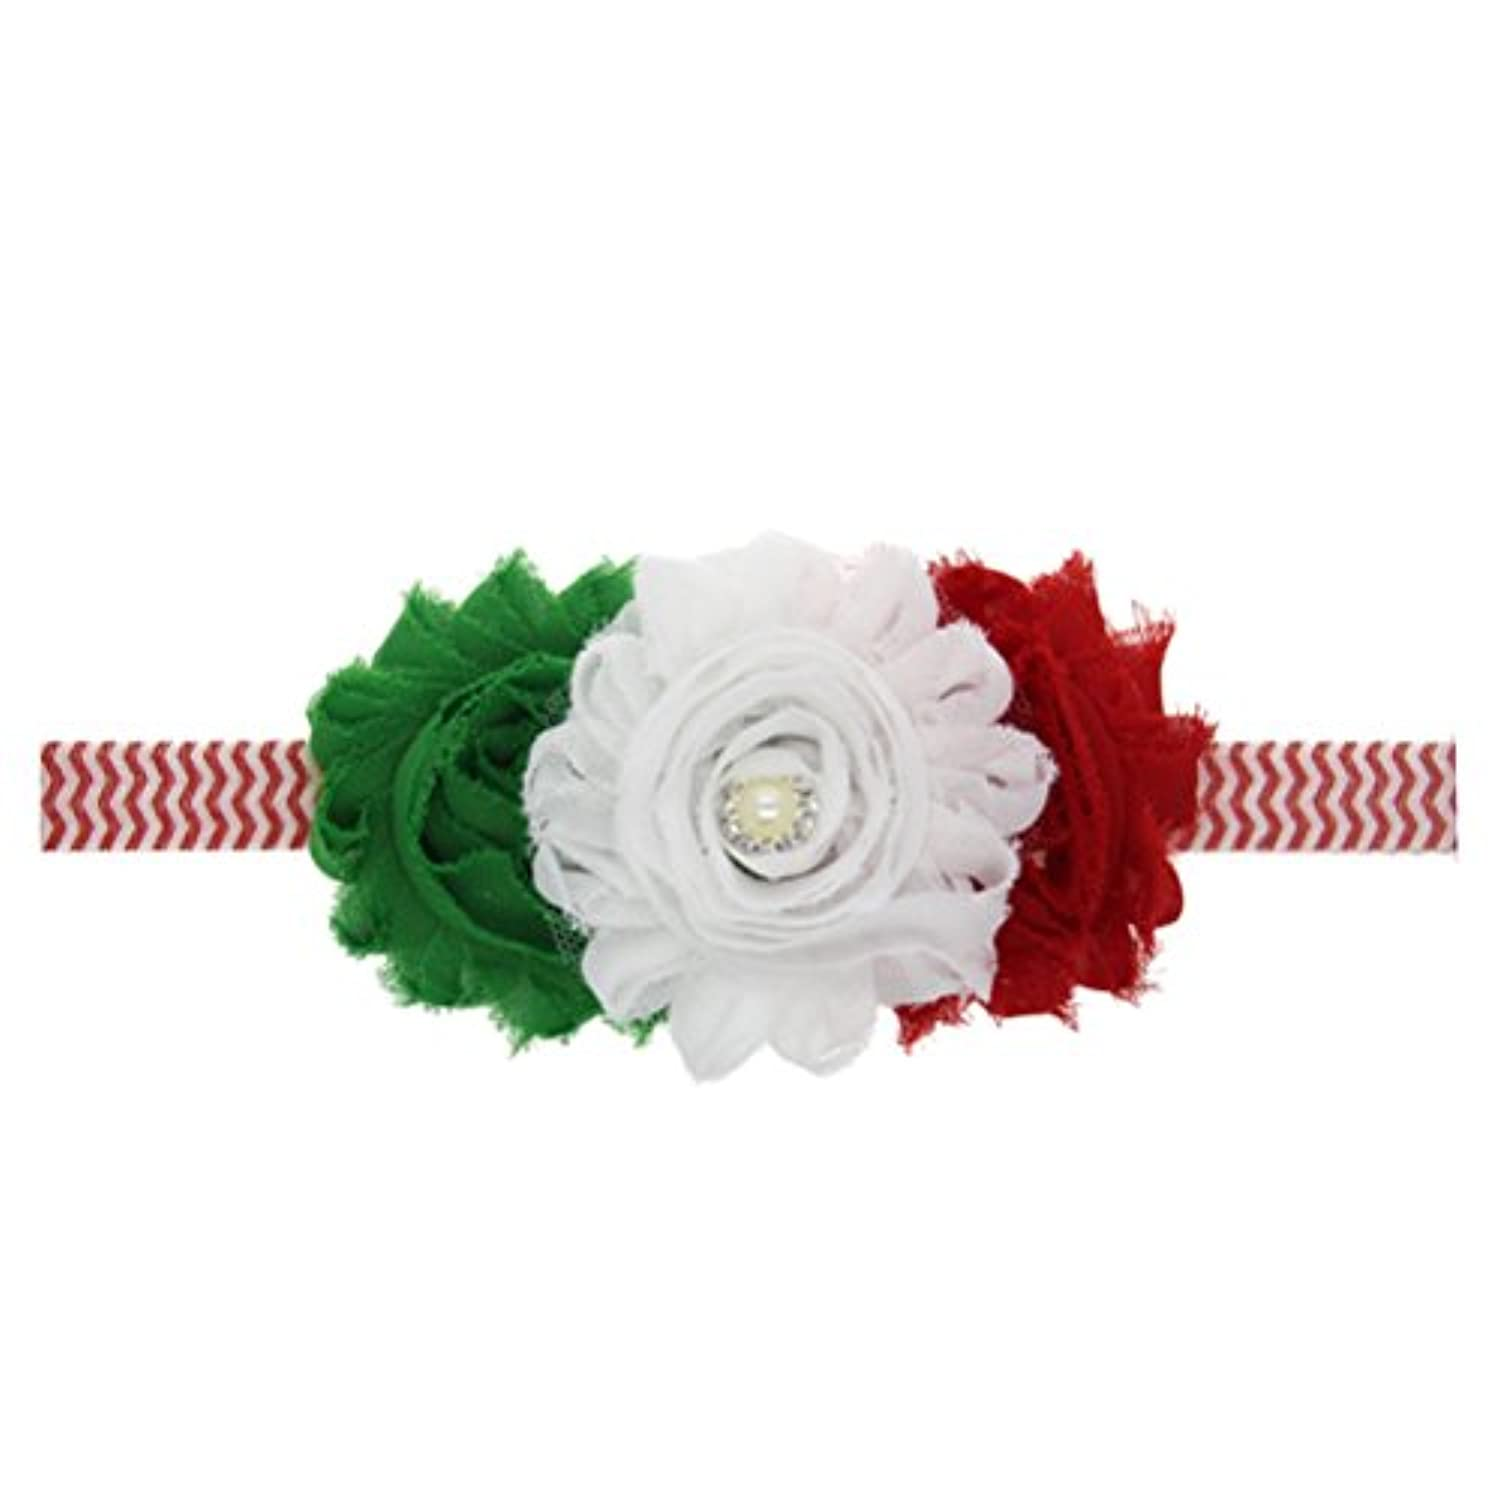 Zhhlaixing ベビー小物 Baby Girls Kids Elastic Bouquet Fowers Headband Hairband Hair Accessories for Christmas